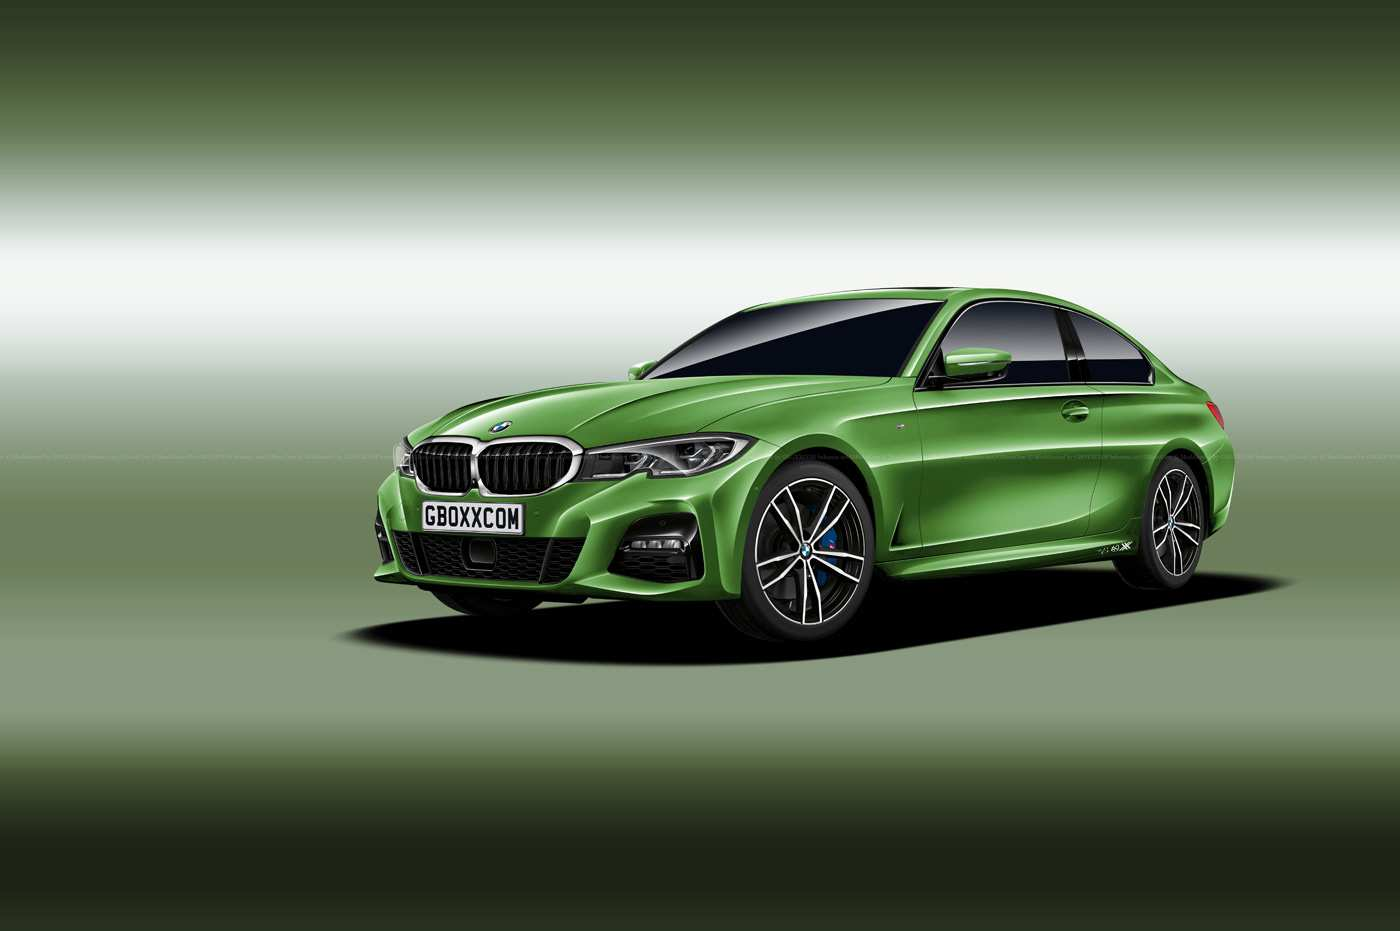 67 New 2020 Bmw 4 Series Concept with 2020 Bmw 4 Series